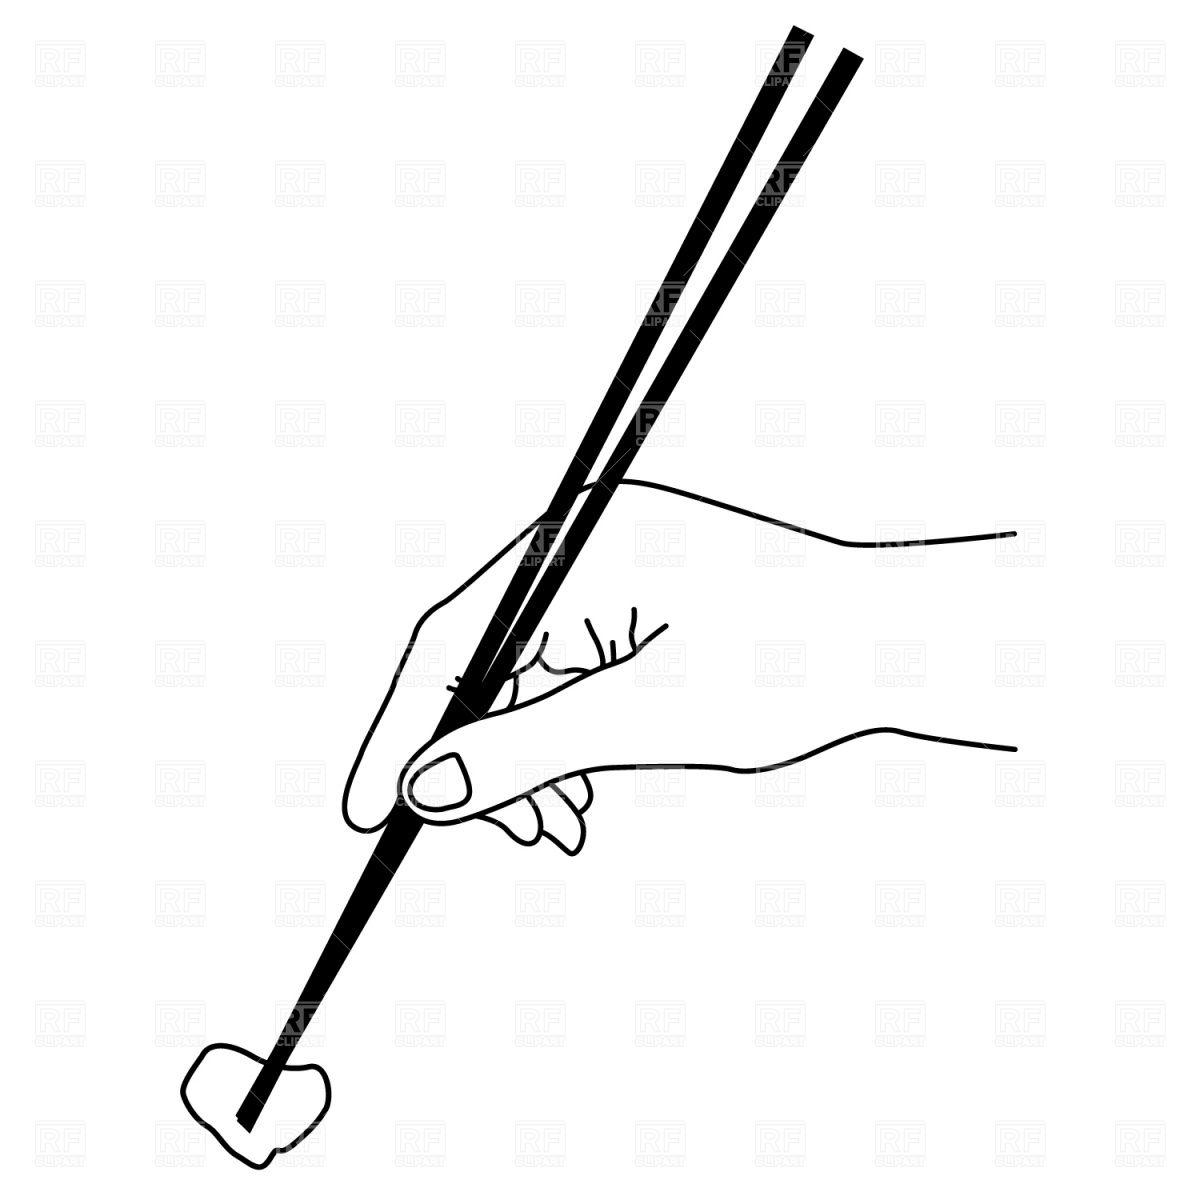 graphic Pin on fusian grandview. Chopsticks clipart drawing.